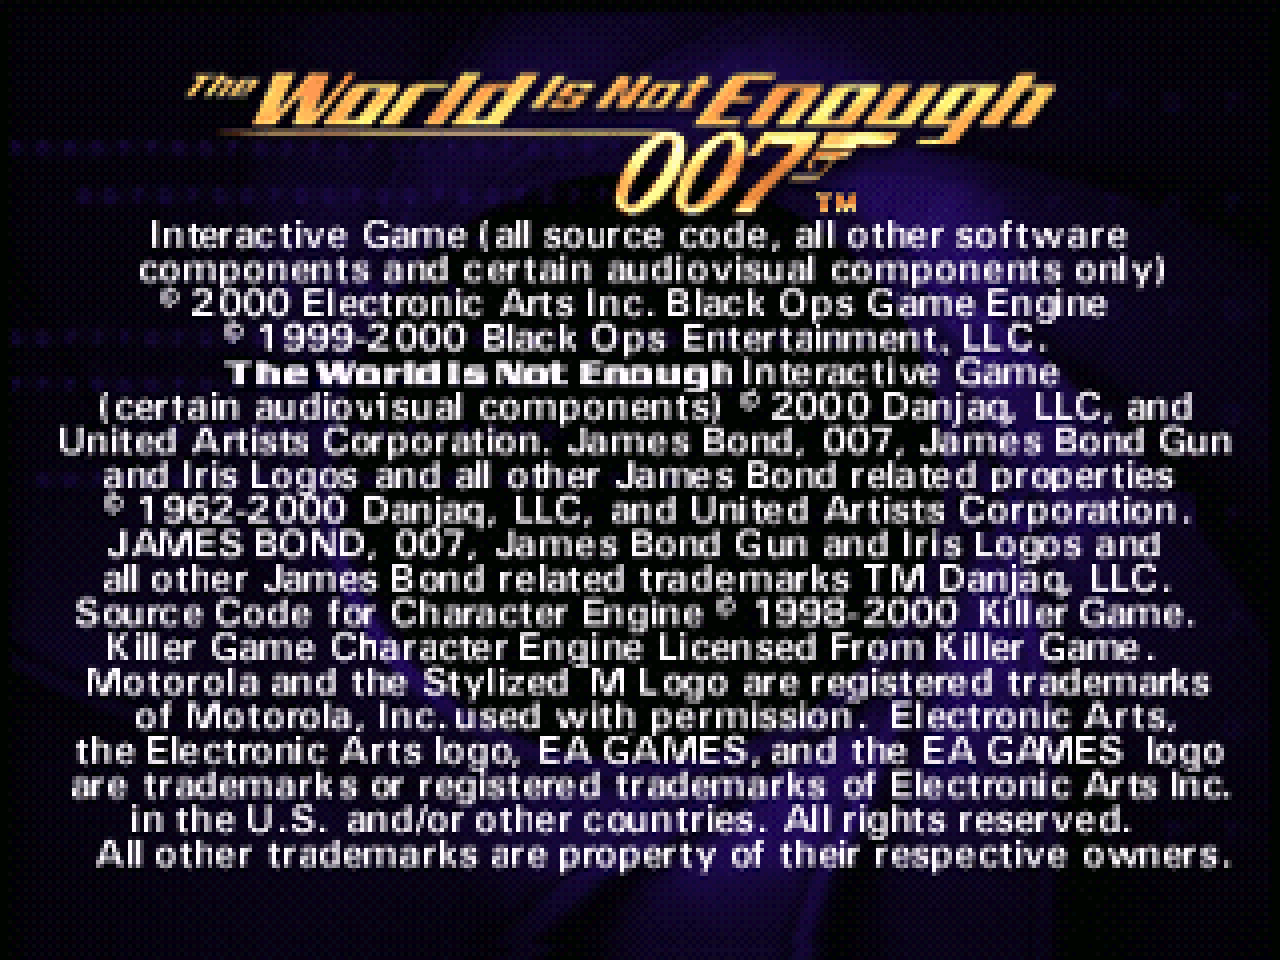 https://s3.eu-west-3.amazonaws.com/games.anthony-dessalles.com/007 The World Is Not Enough PS1 2020 - Screenshots/007 The World Is Not Enough-201121-163434.png